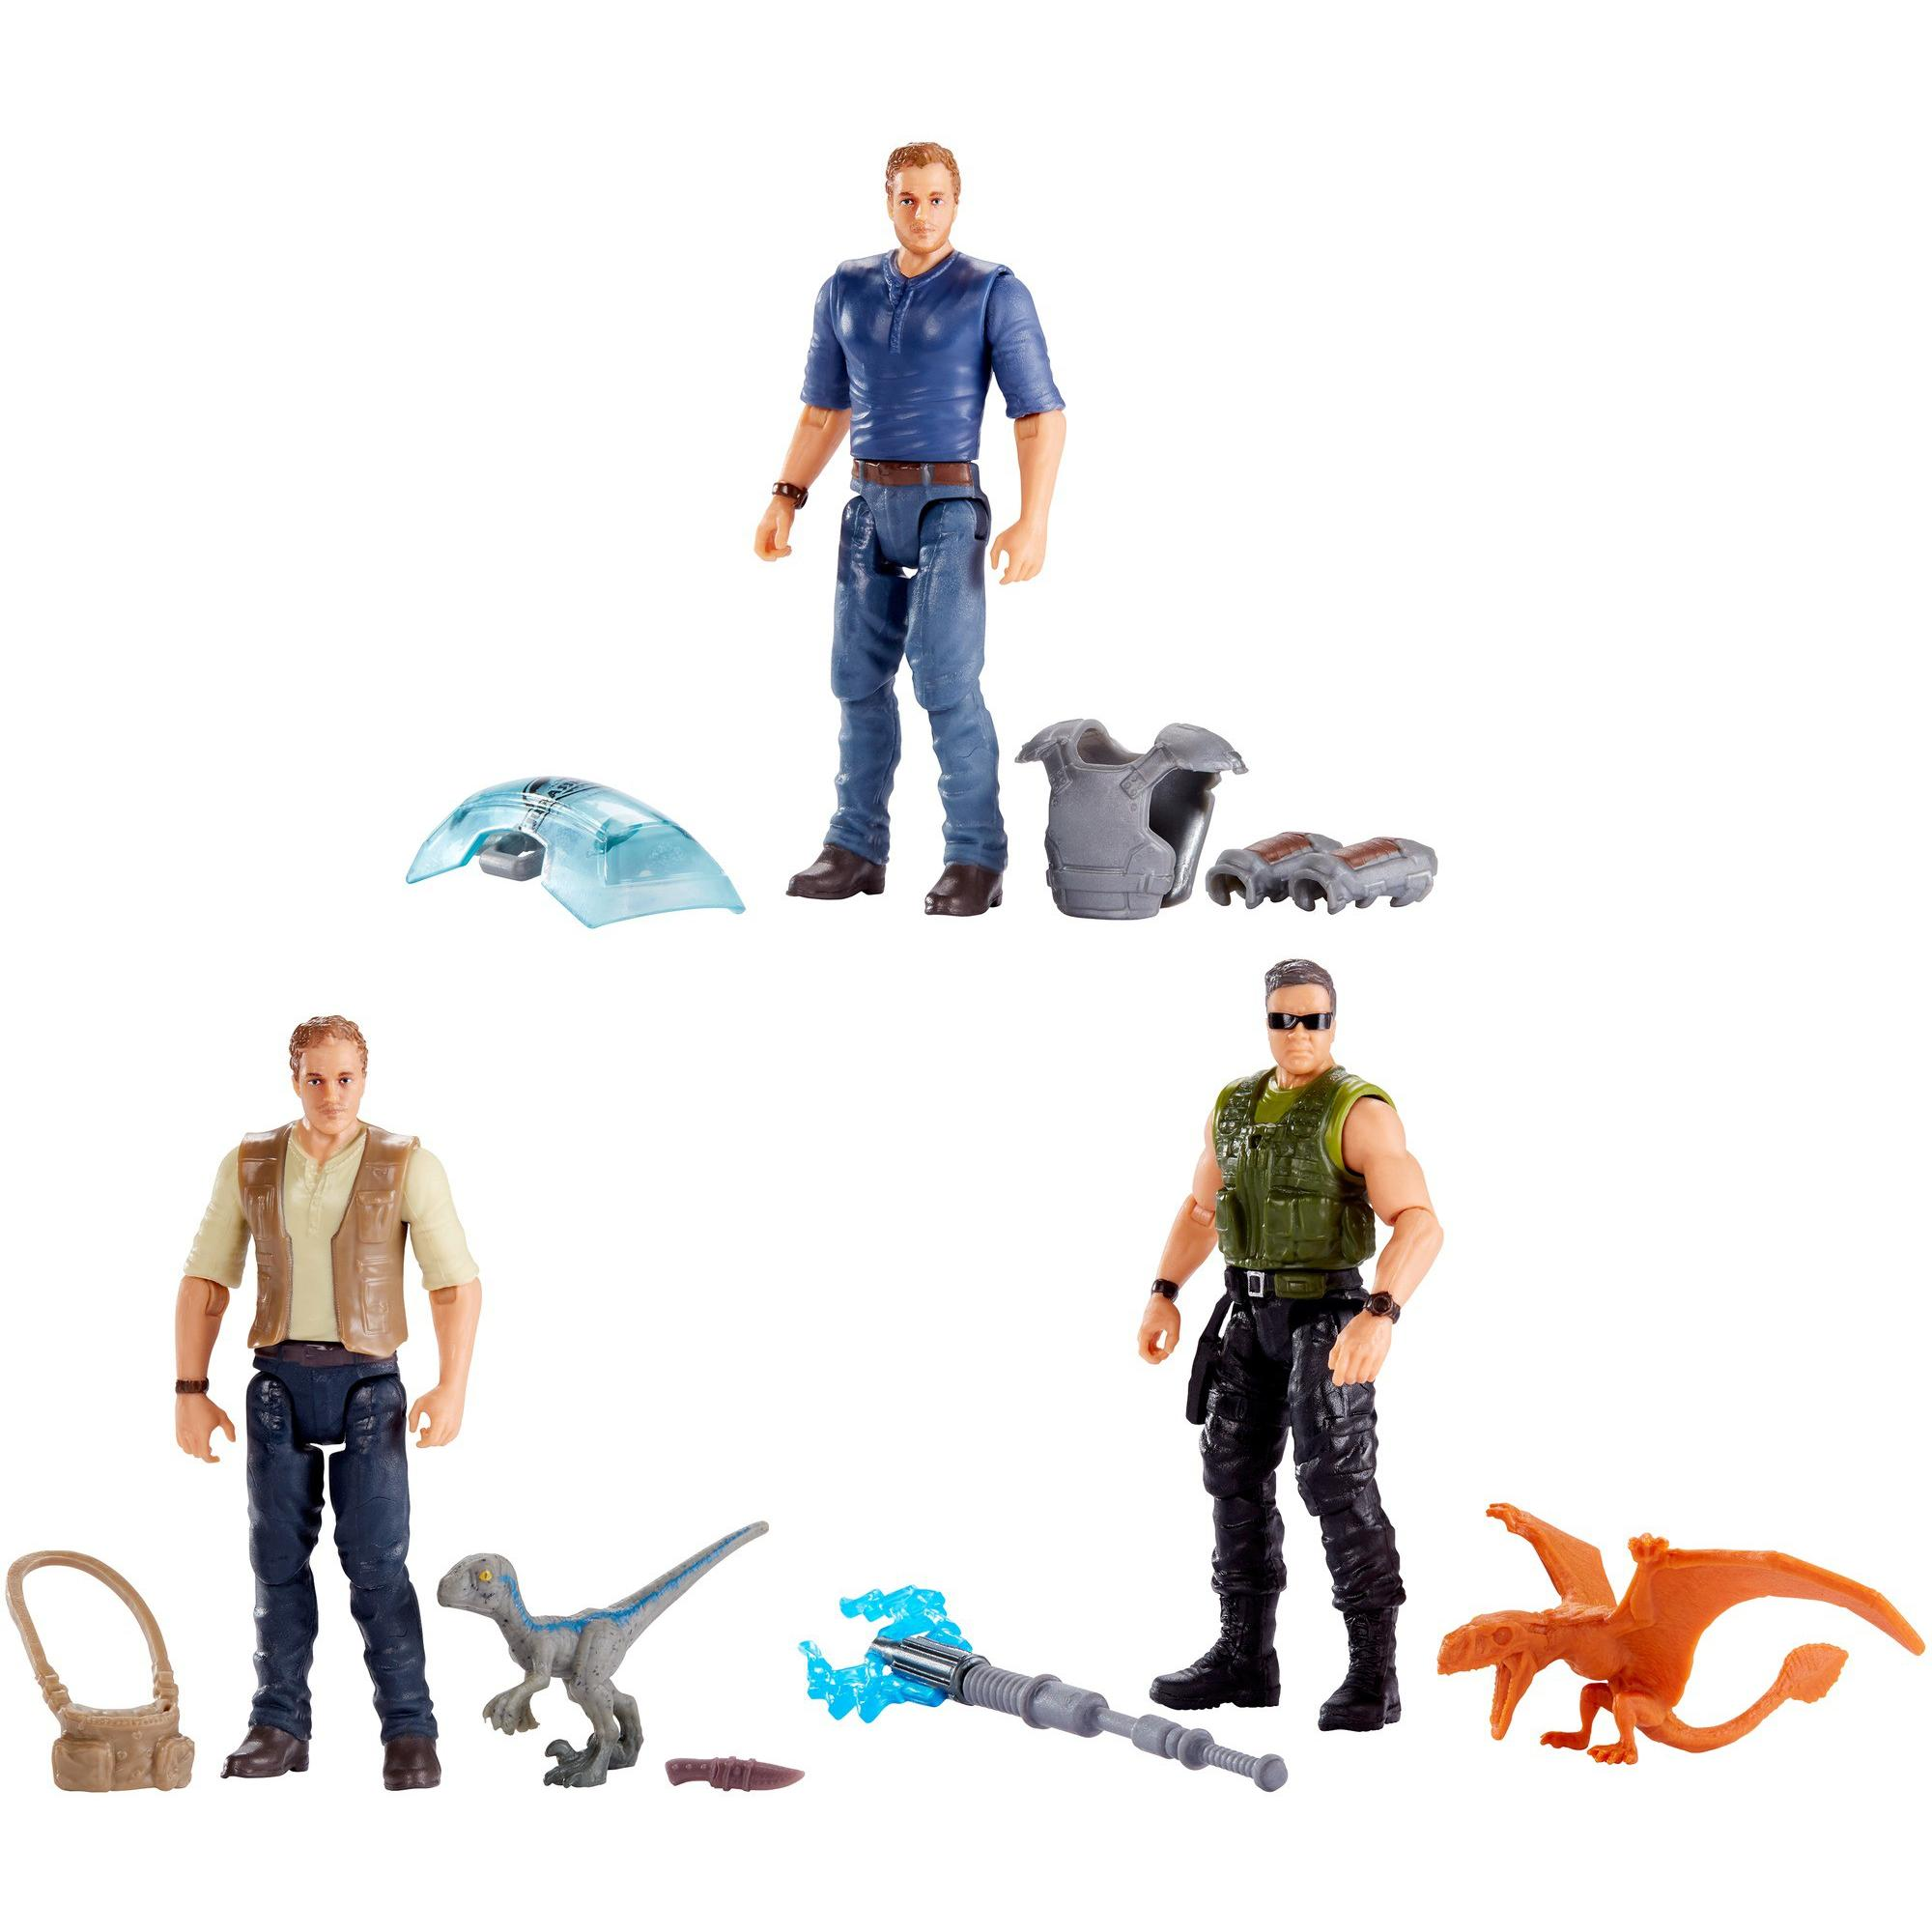 Jurassic World Basic Figure Assortment